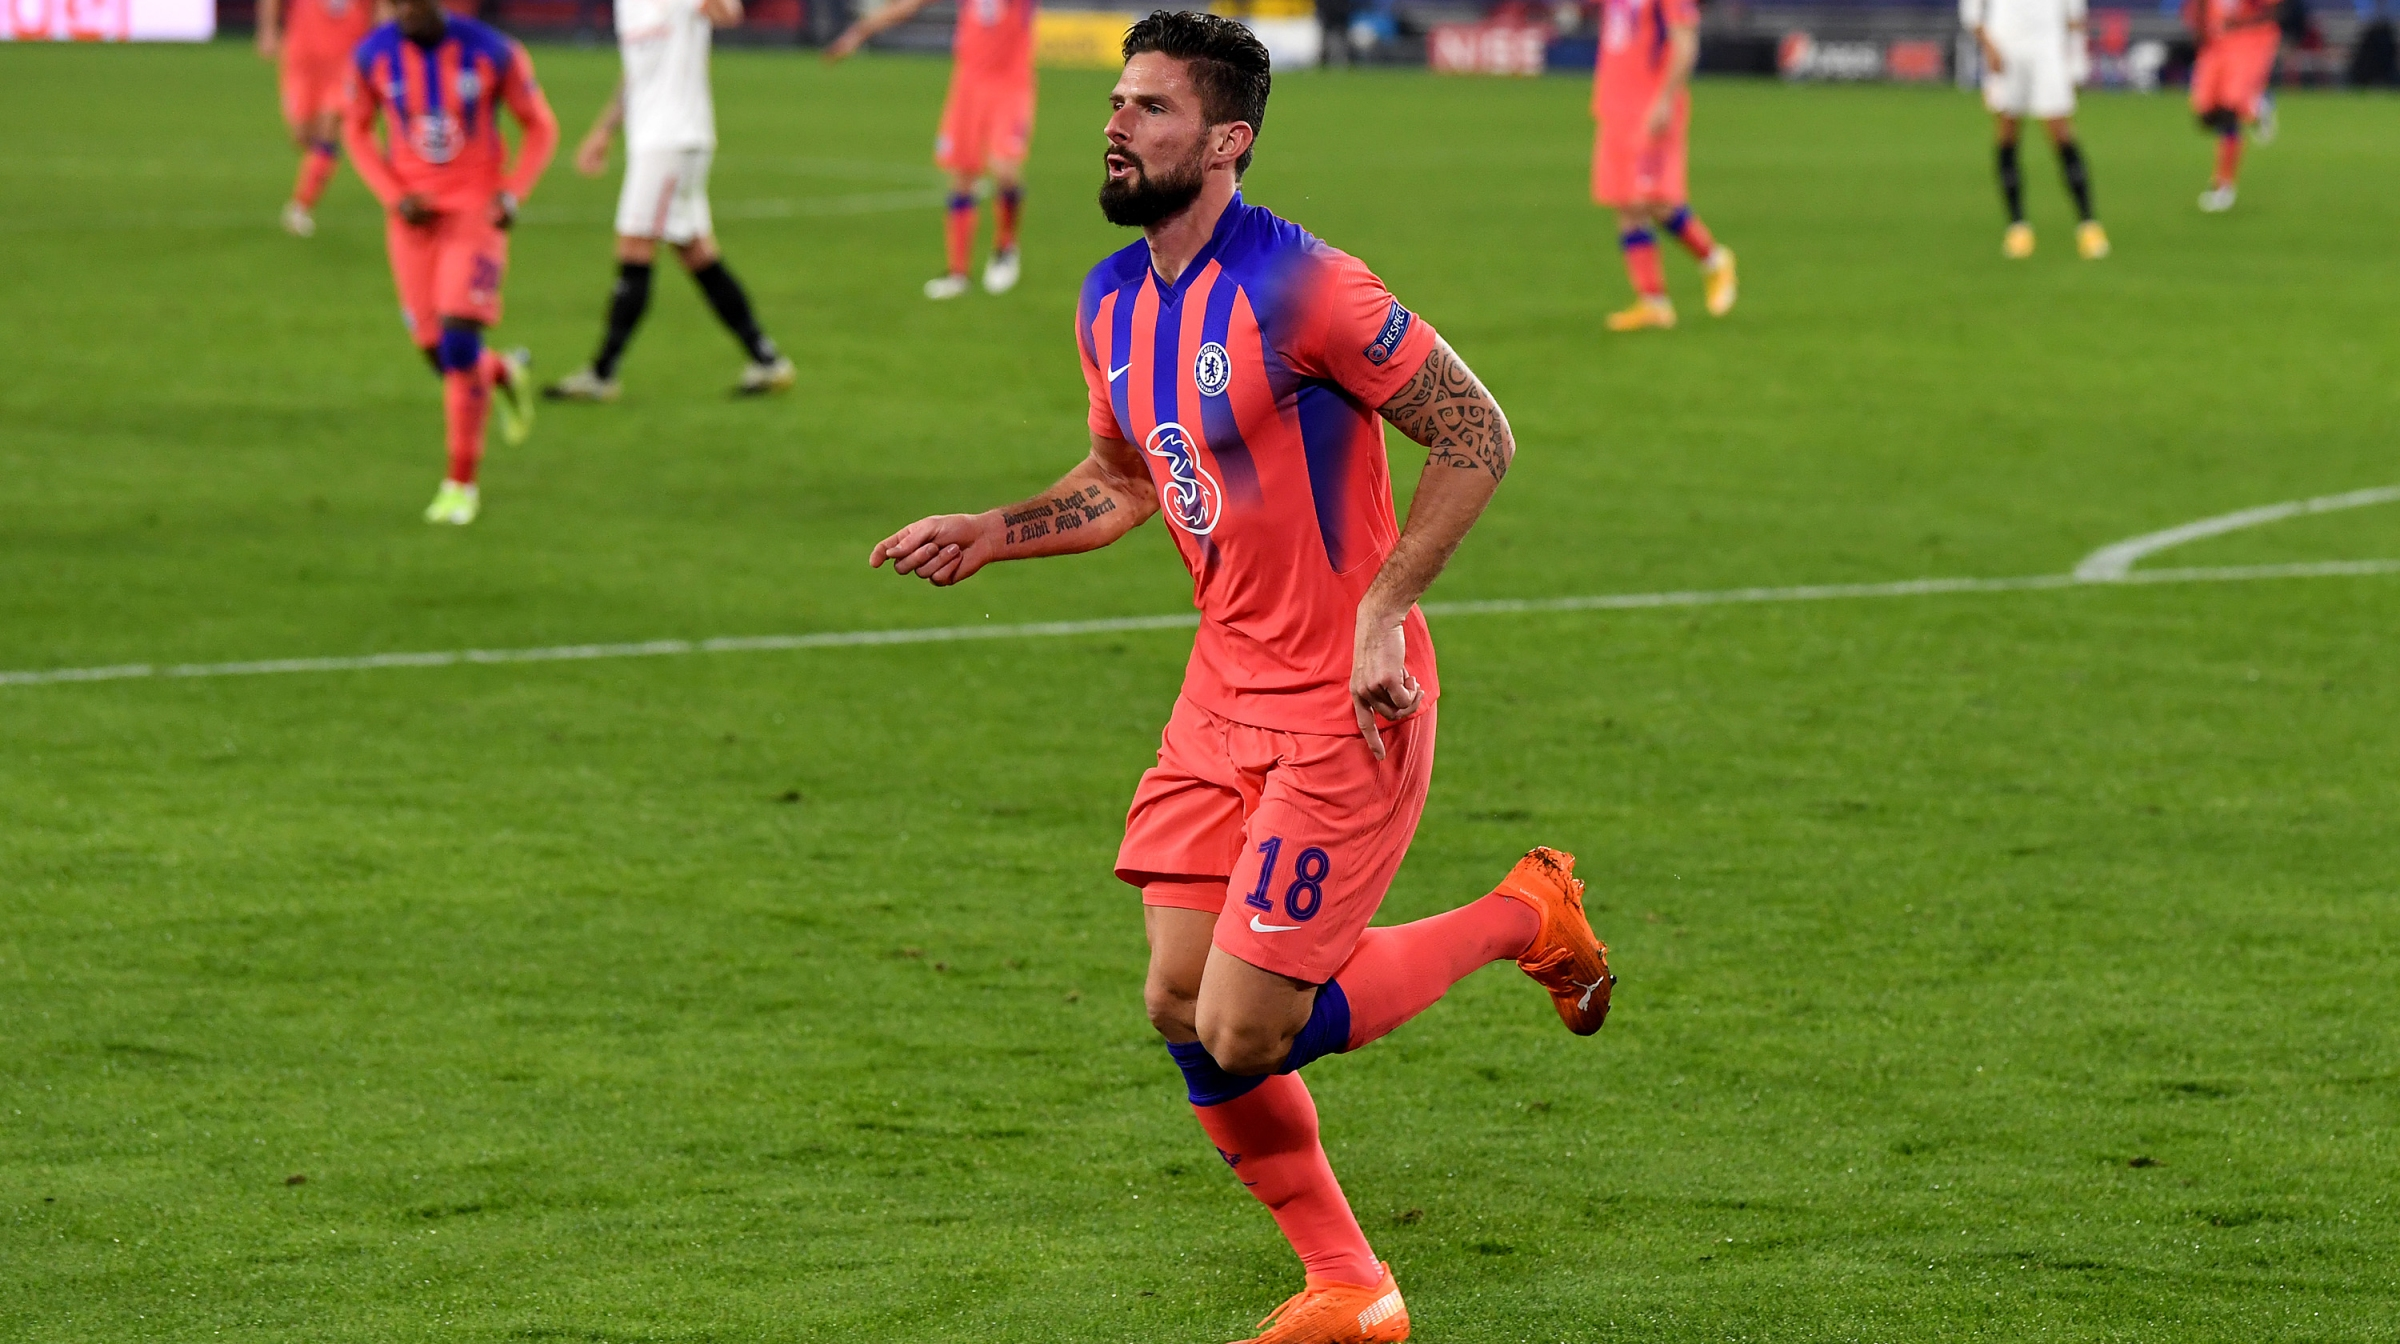 Olivier Giroud of Chelsea celebrates after scoring their sides second goal during the UEFA Champions League Group E stage match between FC Sevilla and Chelsea FC at Estadio Ramon Sanchez Pizjuan on December 02, 2020 in Seville, Spain.